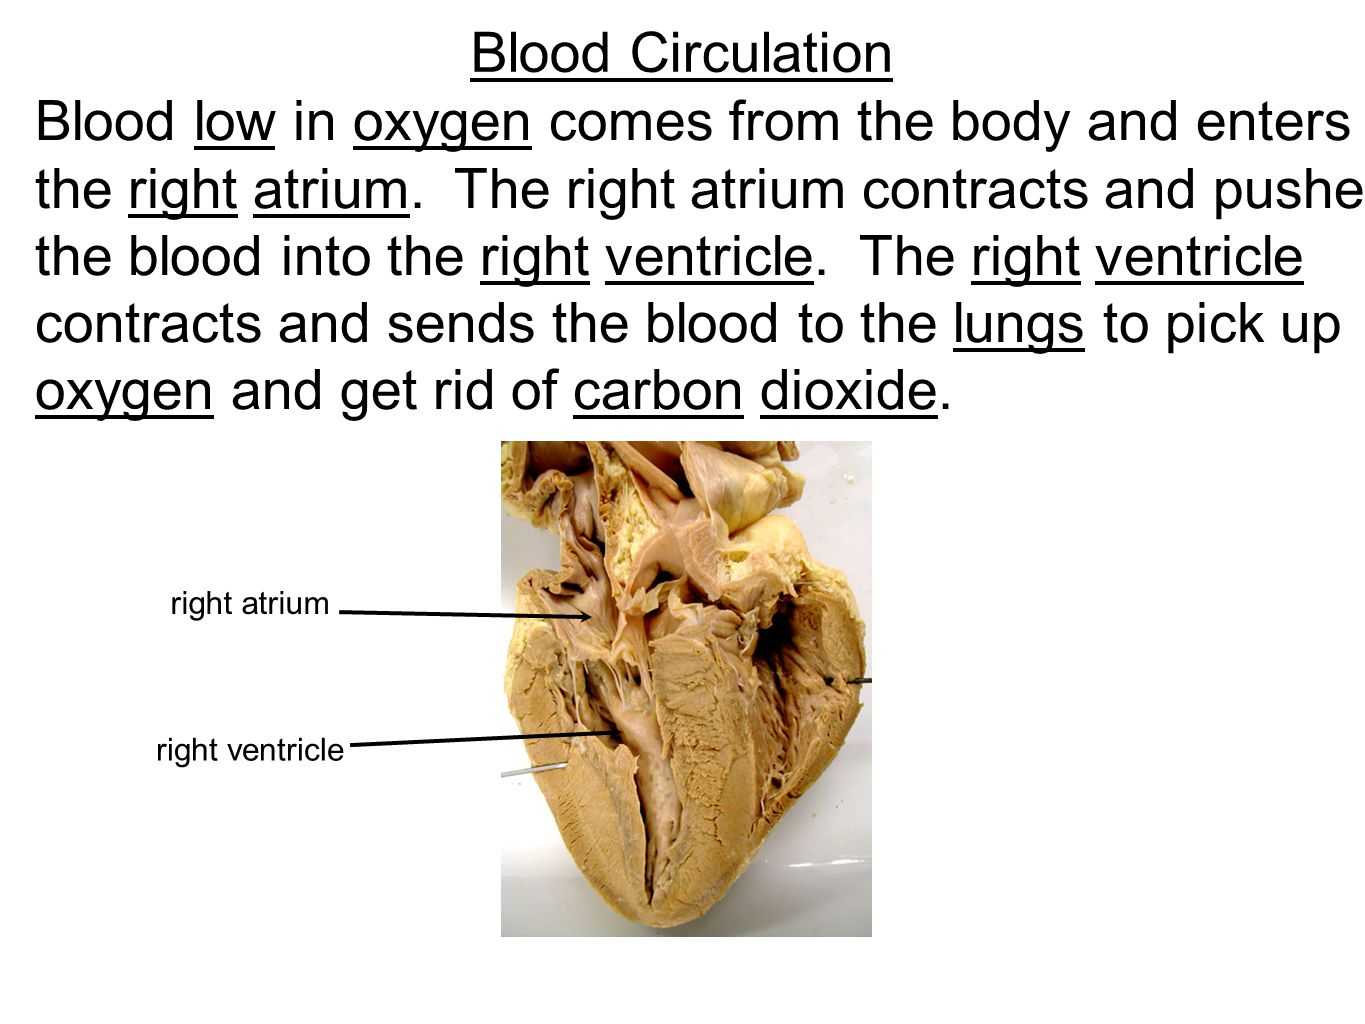 Blood low in oxygen comes from the body and enters